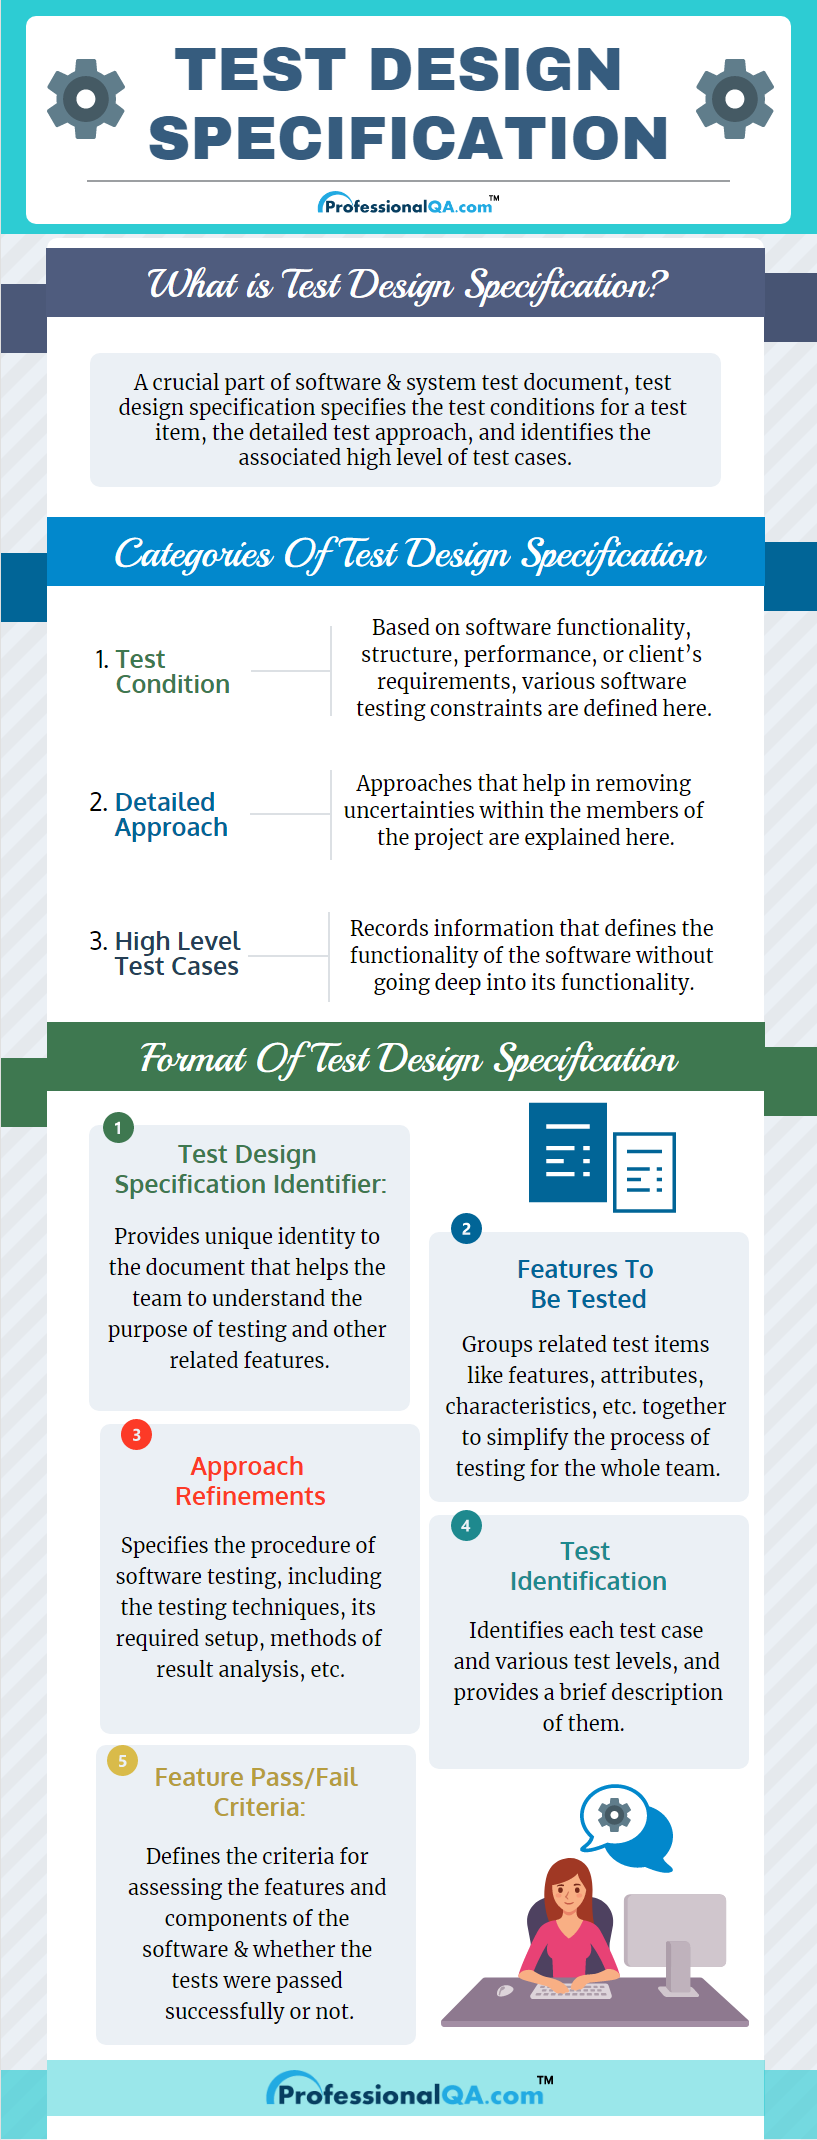 Test Design Specification Professionalqa Com